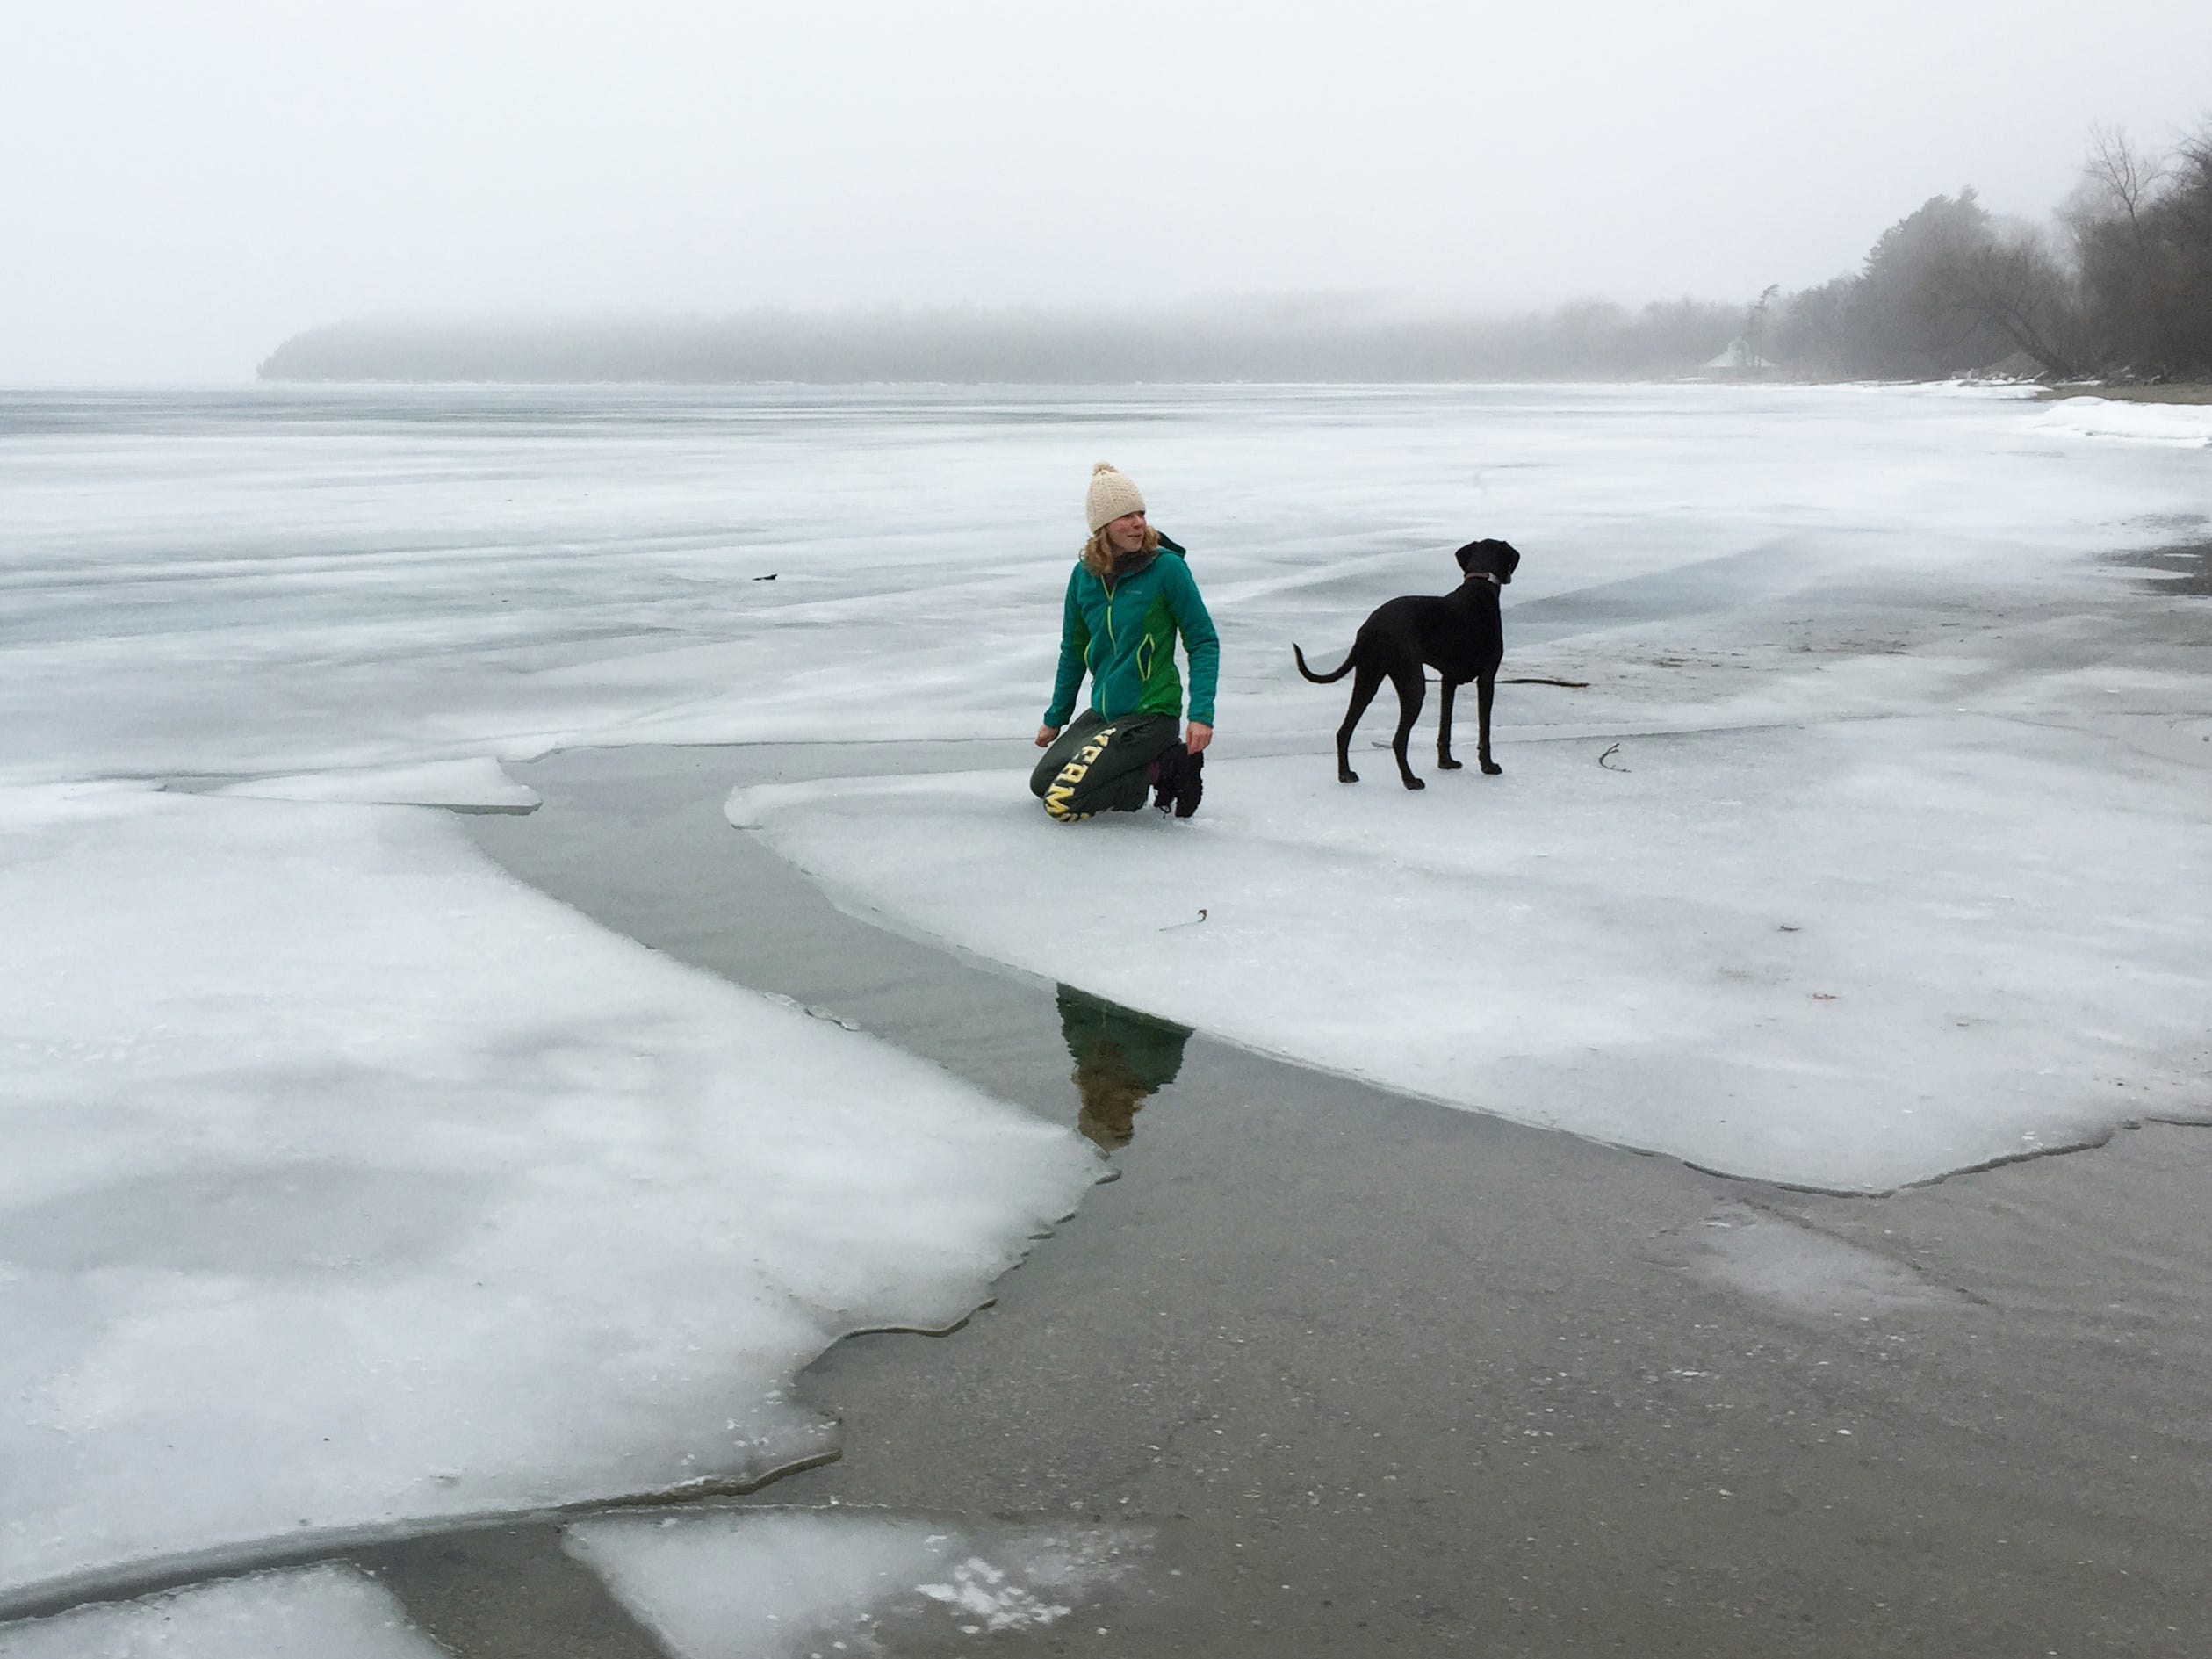 Monika XXX and Luna, the dog, explore ice formations on the Burlington shoreline, looking for an ideal spot to swim on March 27, 2015.